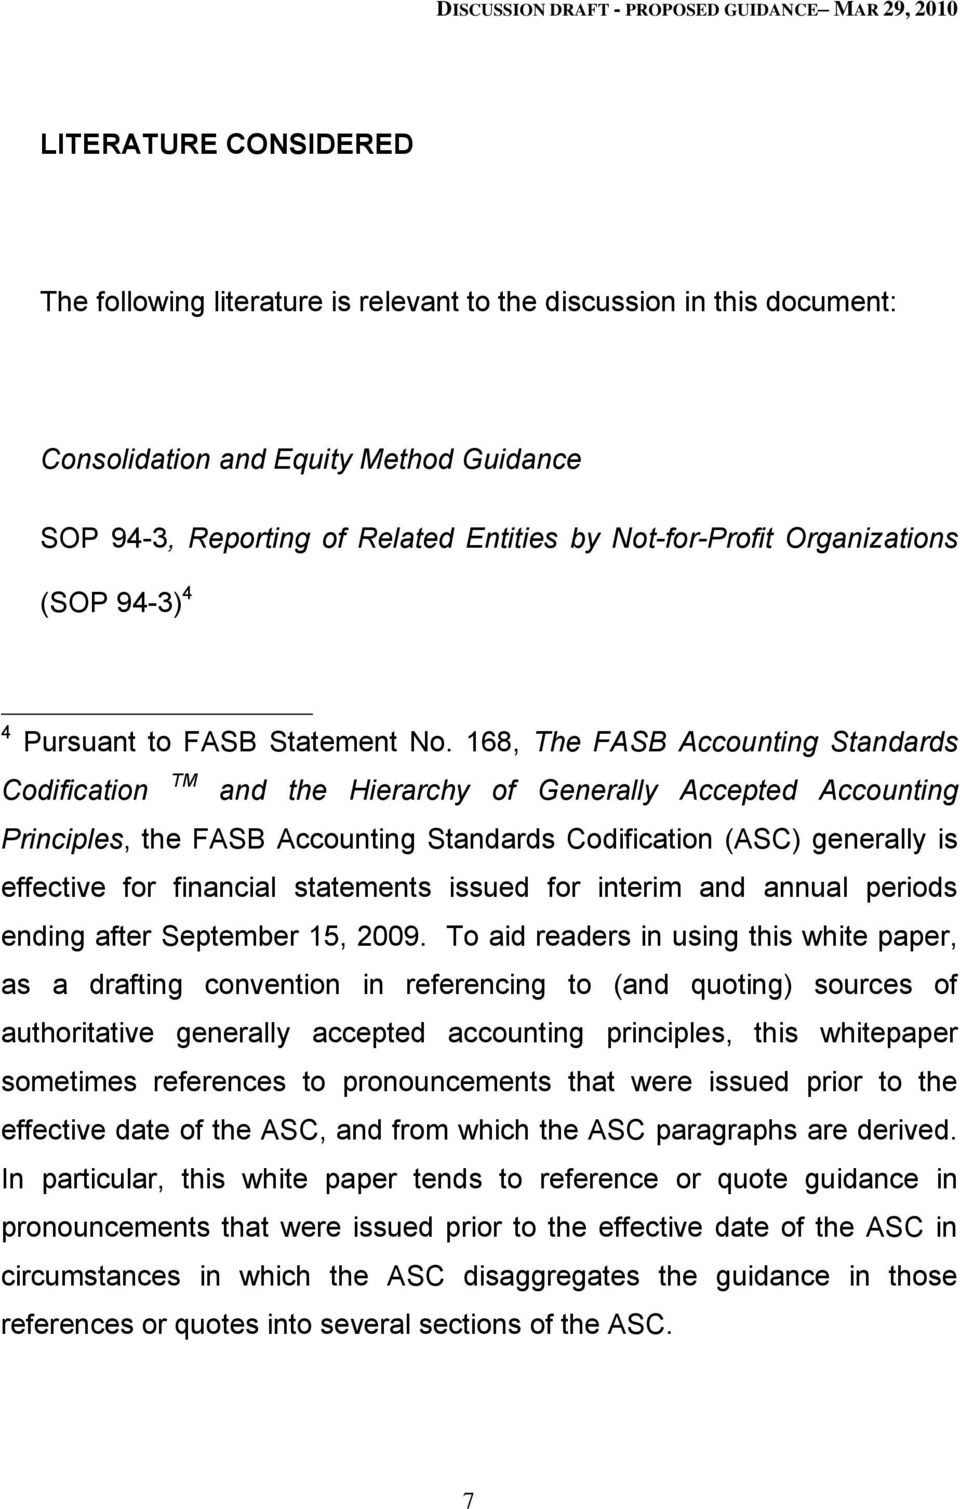 168, The FASB Accounting Standards Codification TM and the Hierarchy of Generally Accepted Accounting Principles, the FASB Accounting Standards Codification (ASC) generally is effective for financial